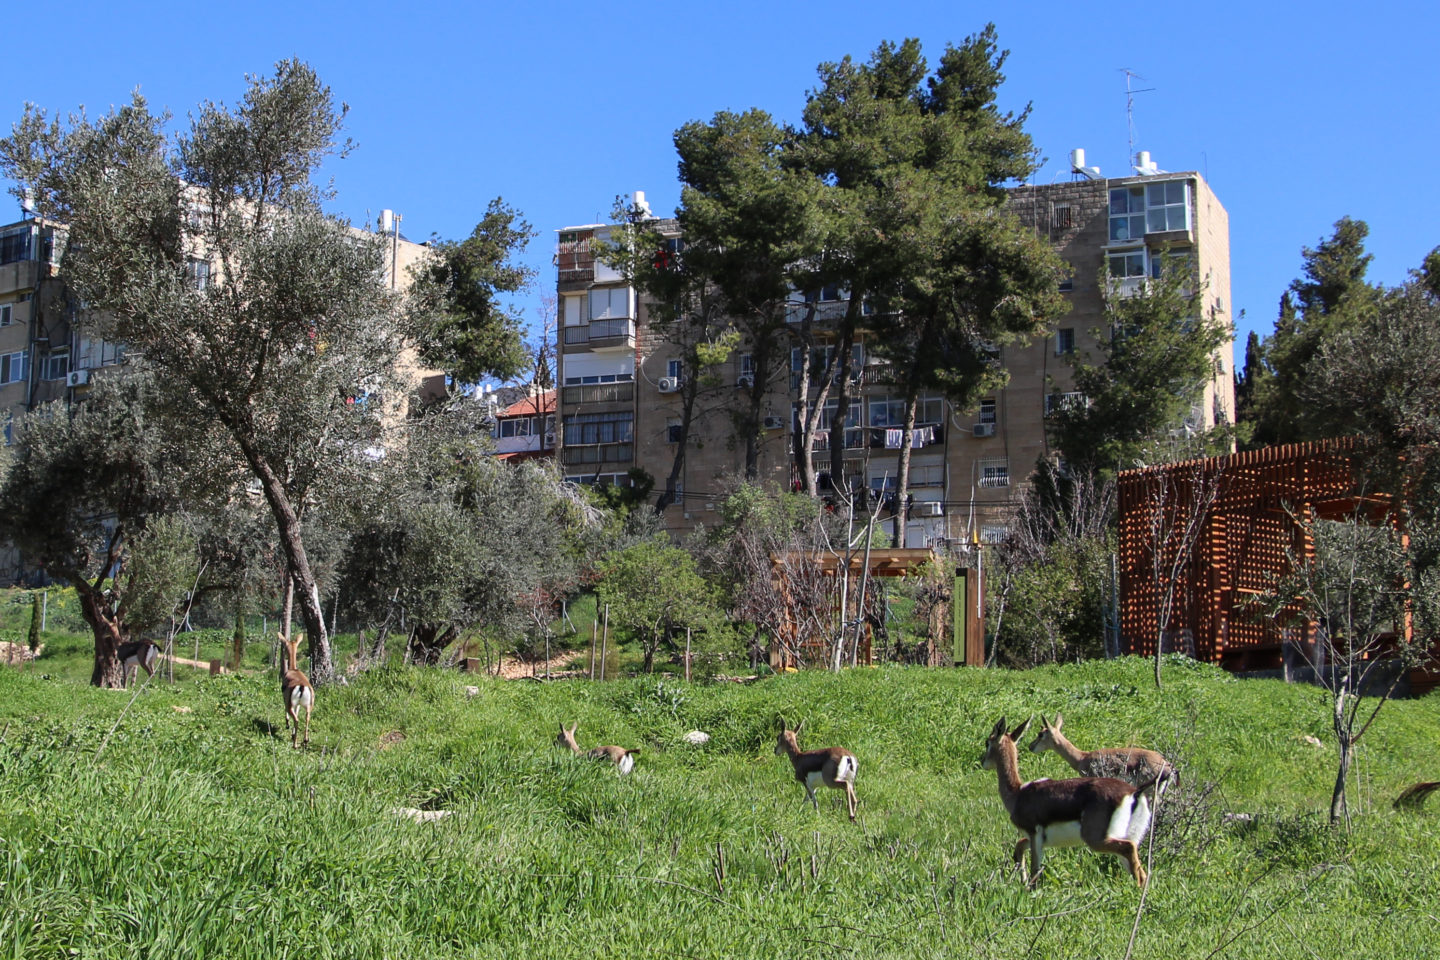 In urban wildlife sites, nature and people learn to coexist in a city setting | The Switchers